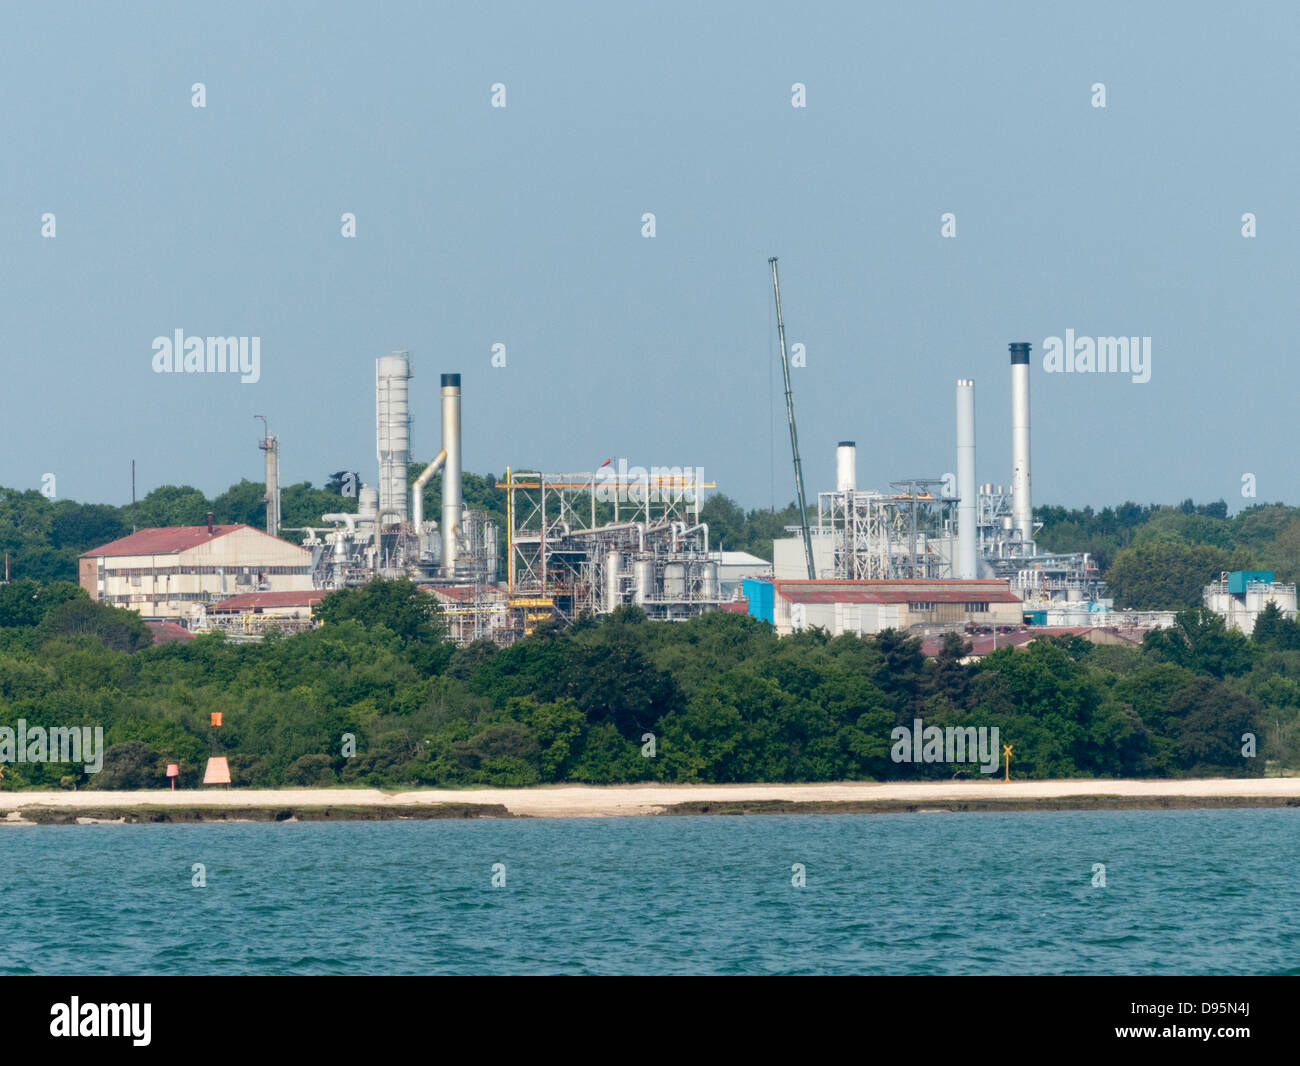 Polimeri Europa Ltd industrial chemical company on the edge of Southampton Water near Hythe - Stock Image